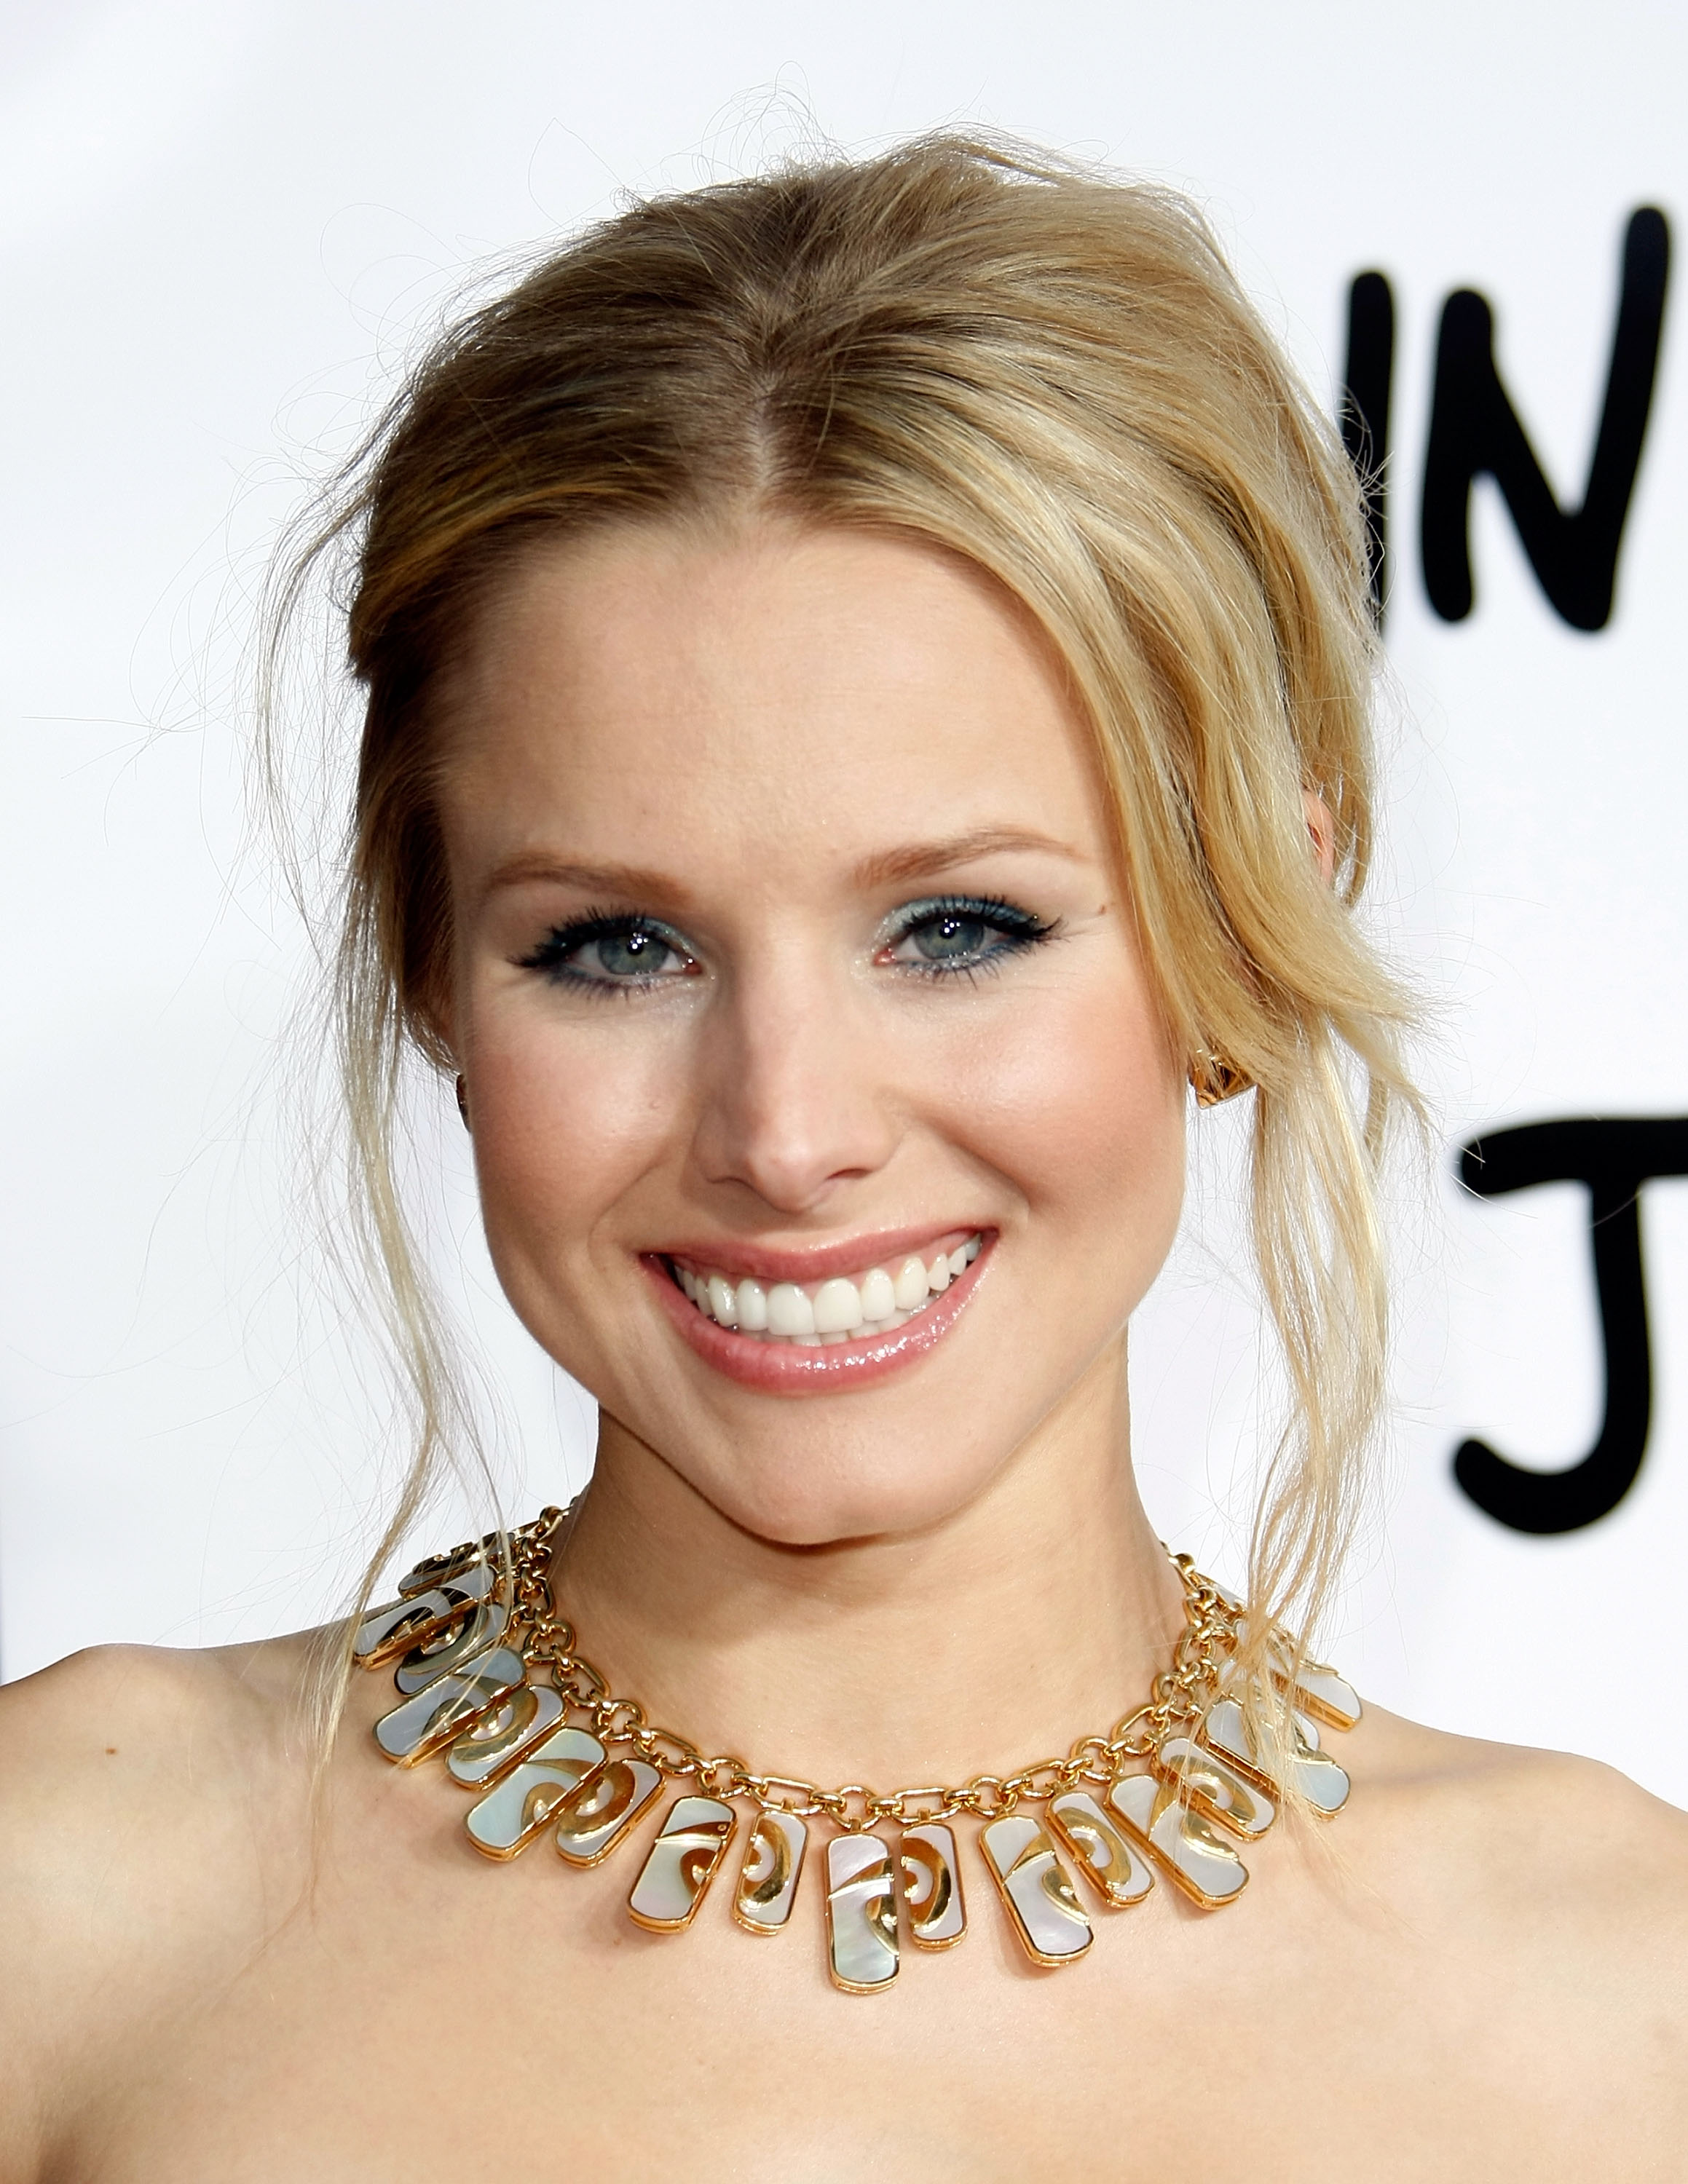 95043_Kristen_Bell-Forgetting_Sarah_Marshall_premiere_in_Hollywood_664_122_485lo.jpg